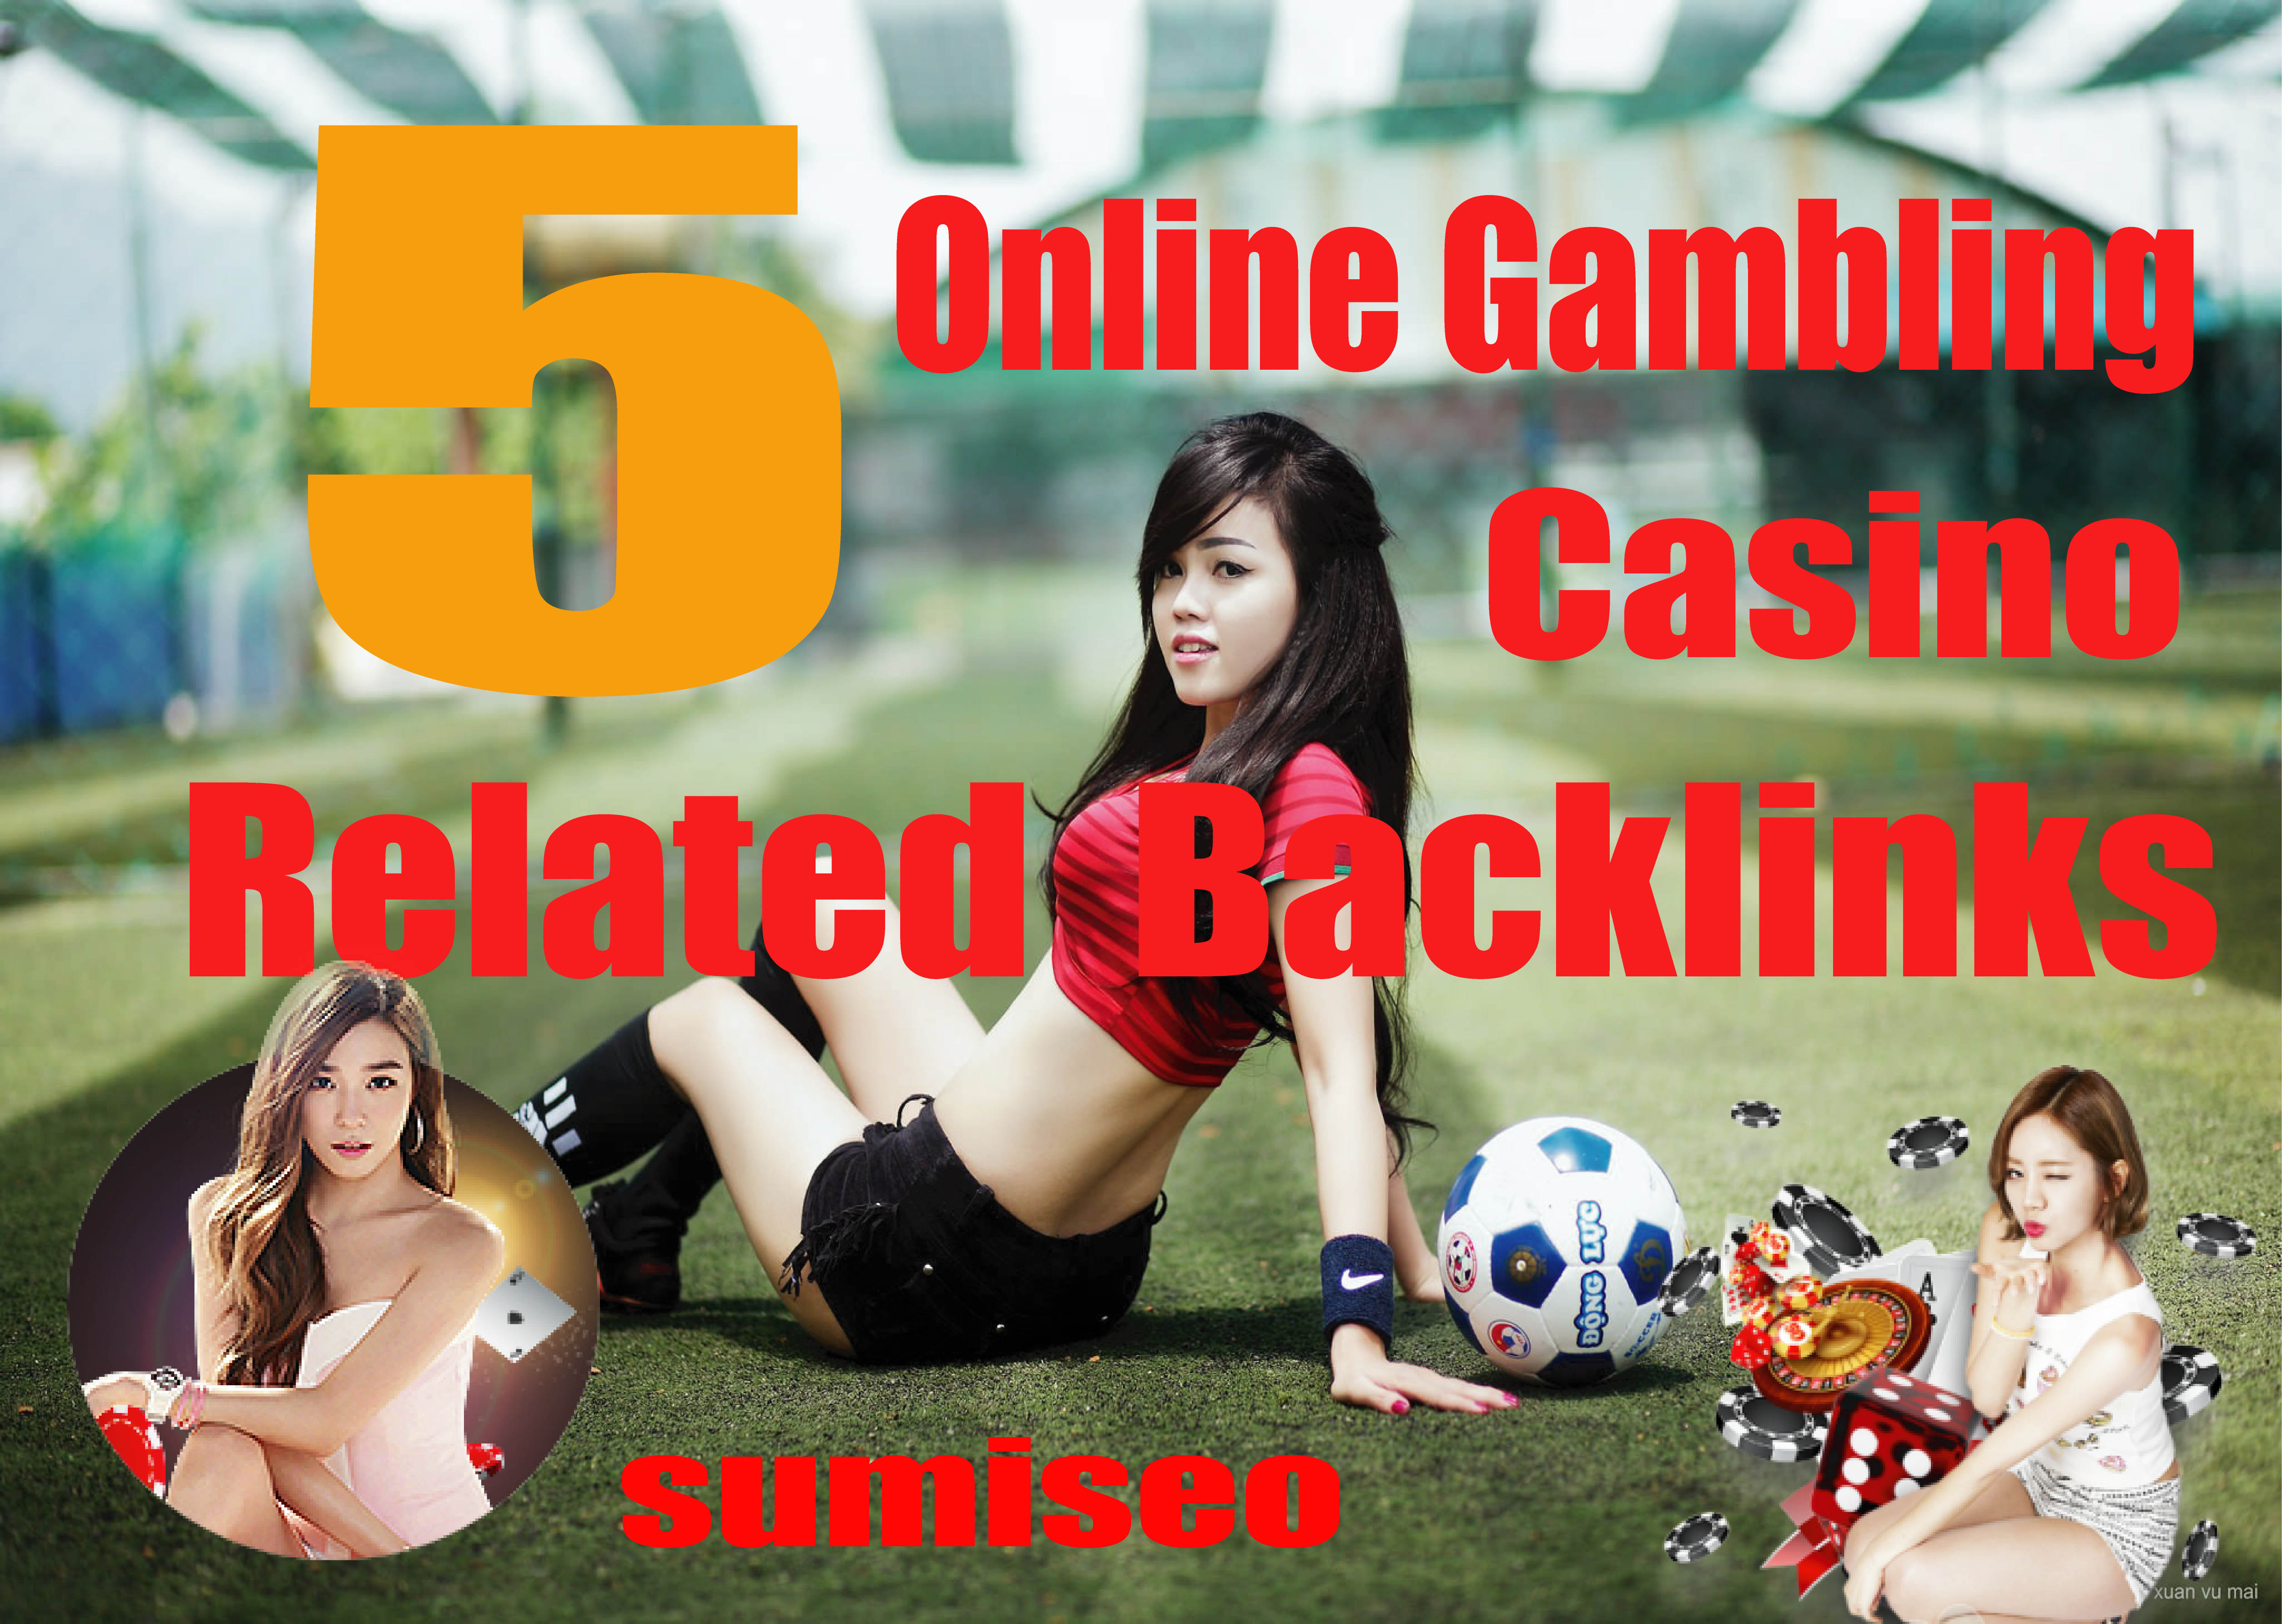 5 Casino PBN Links- Casino / Gambling / Poker / Betting / sports sites